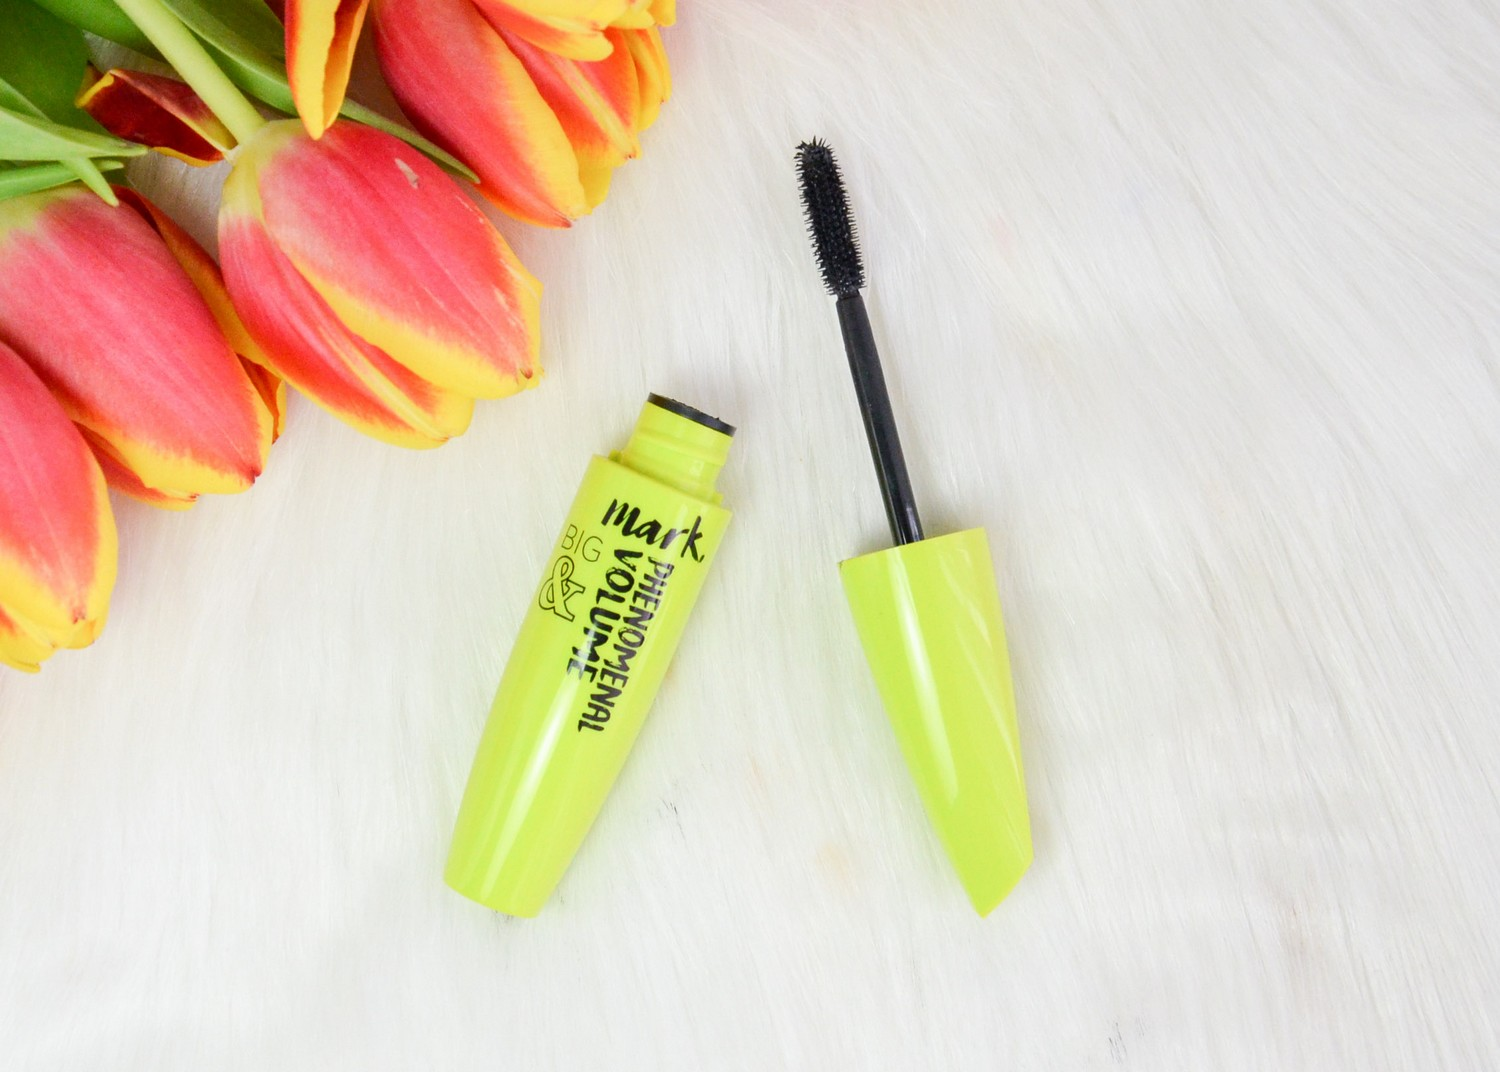 New Spring Products from Avon | Nourishing Lip Oil and Big & Phenomenal Volume Mascara